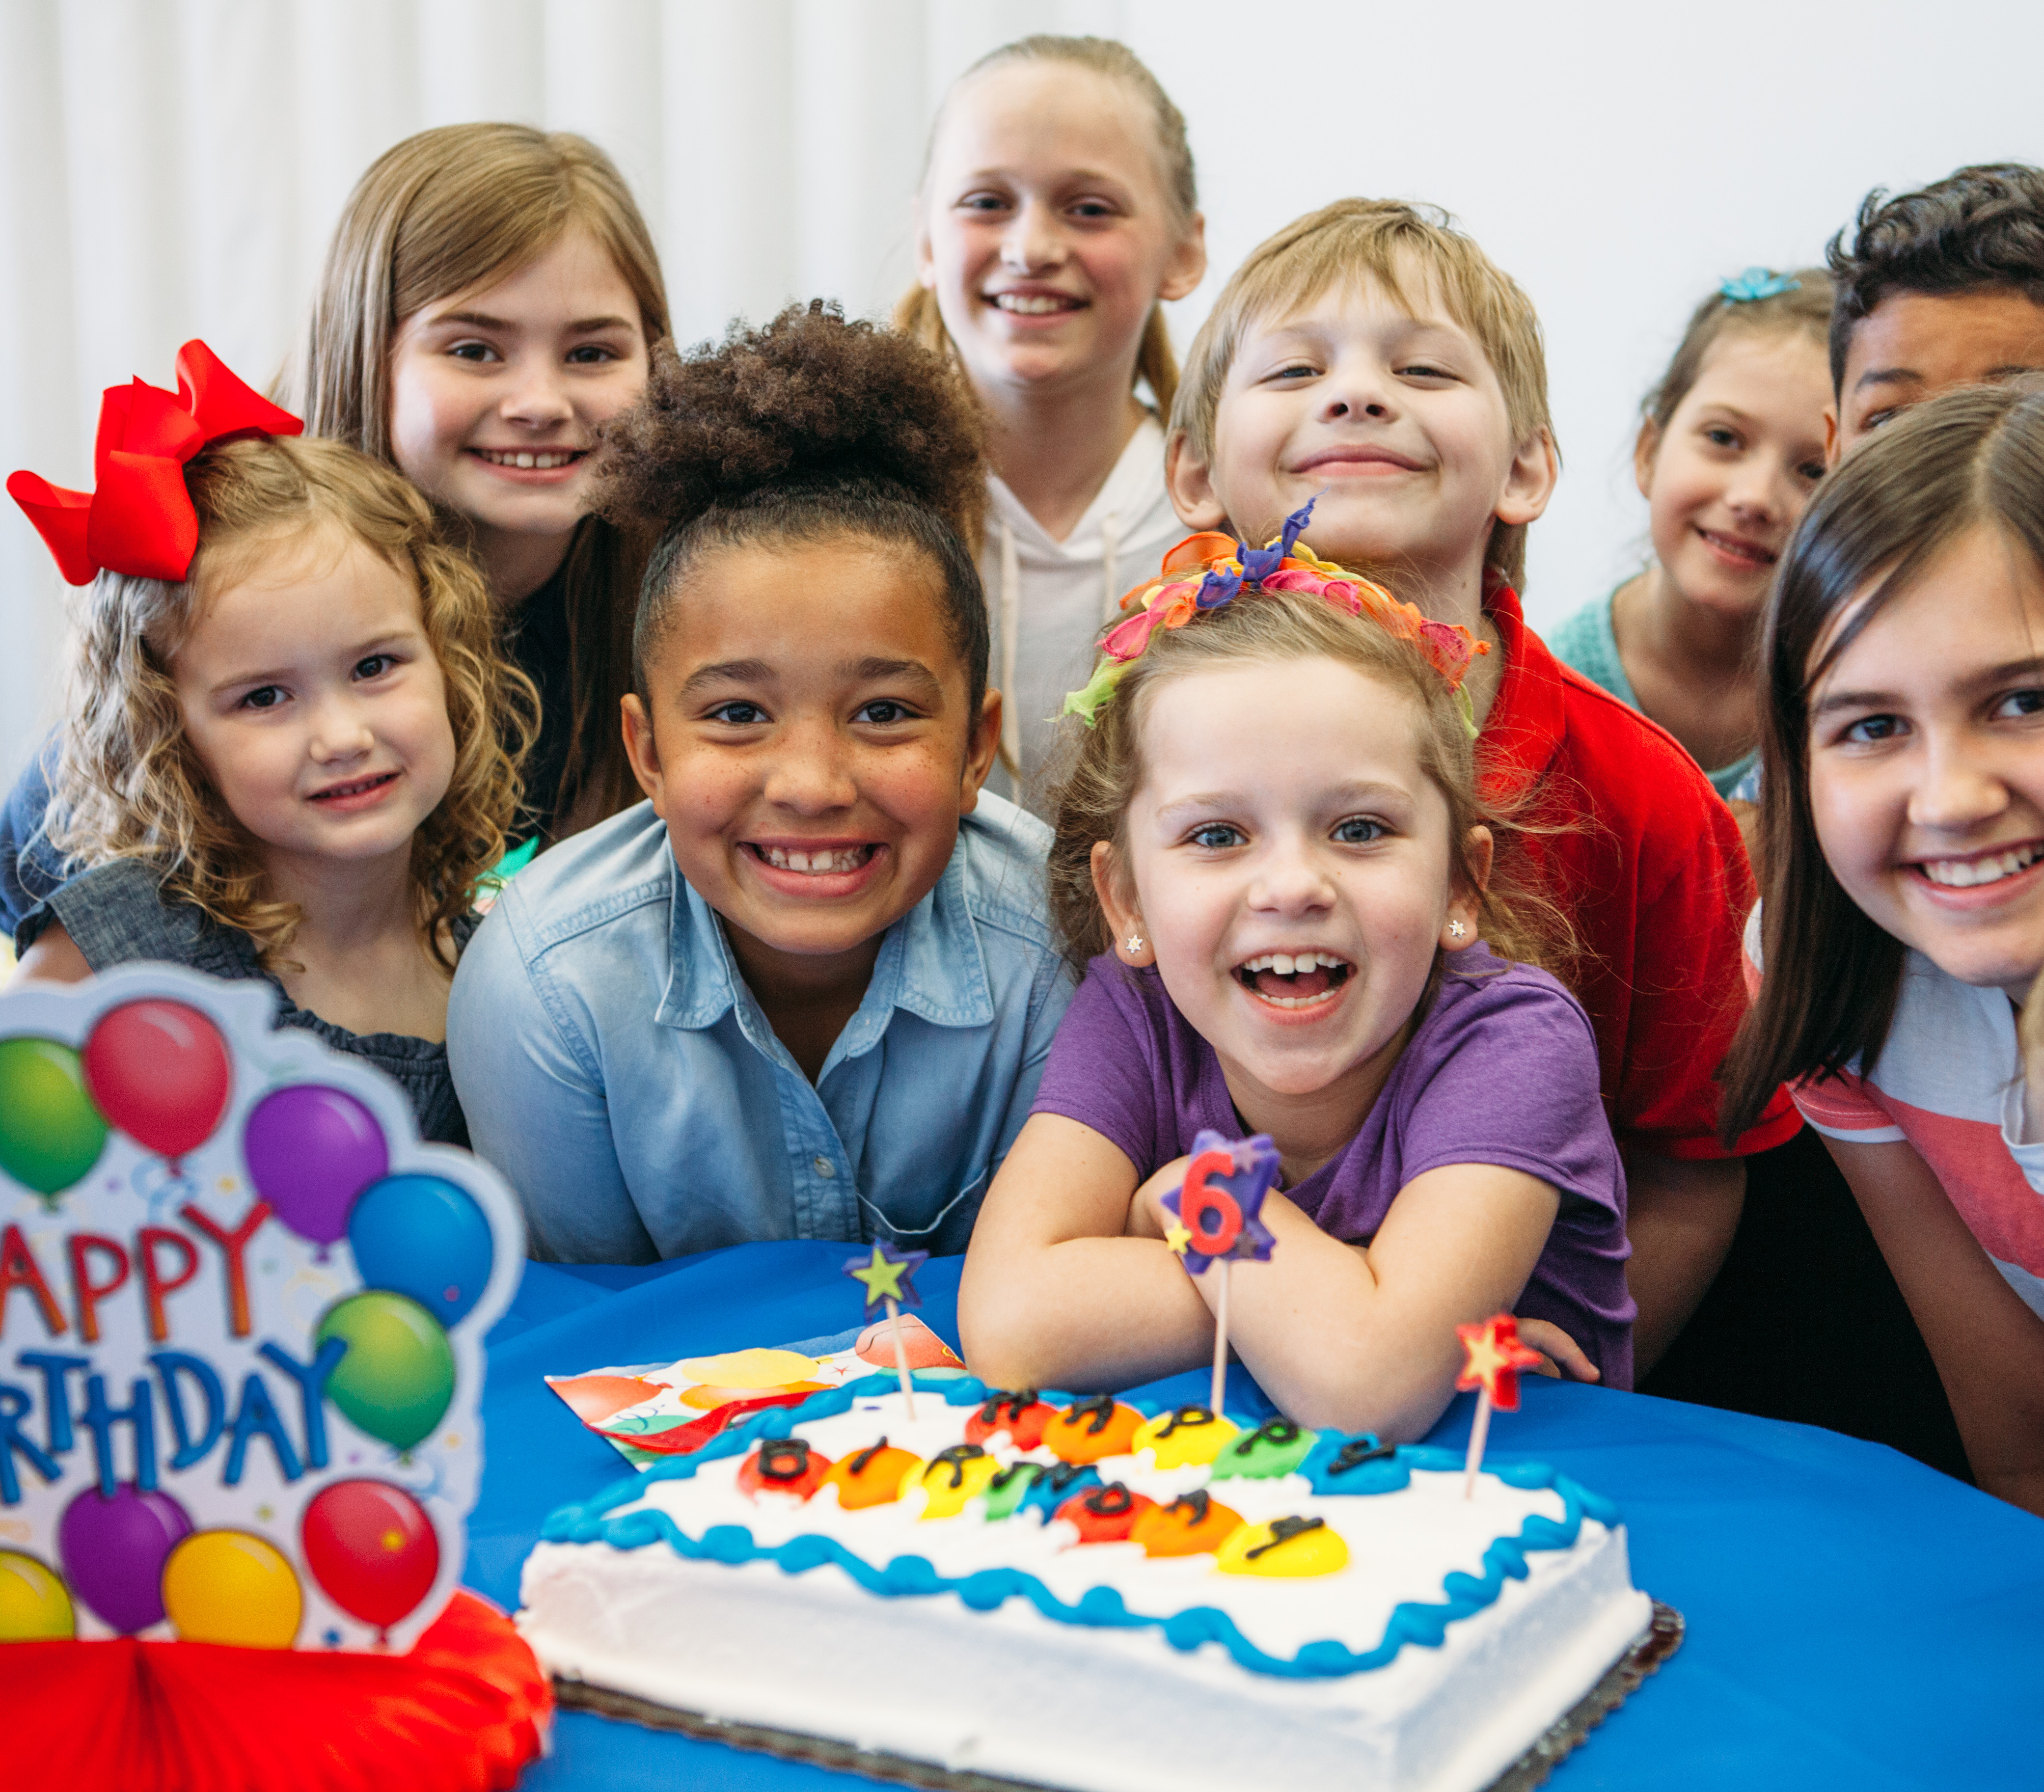 Kid's Celebrating at Birthday Party Over Cake